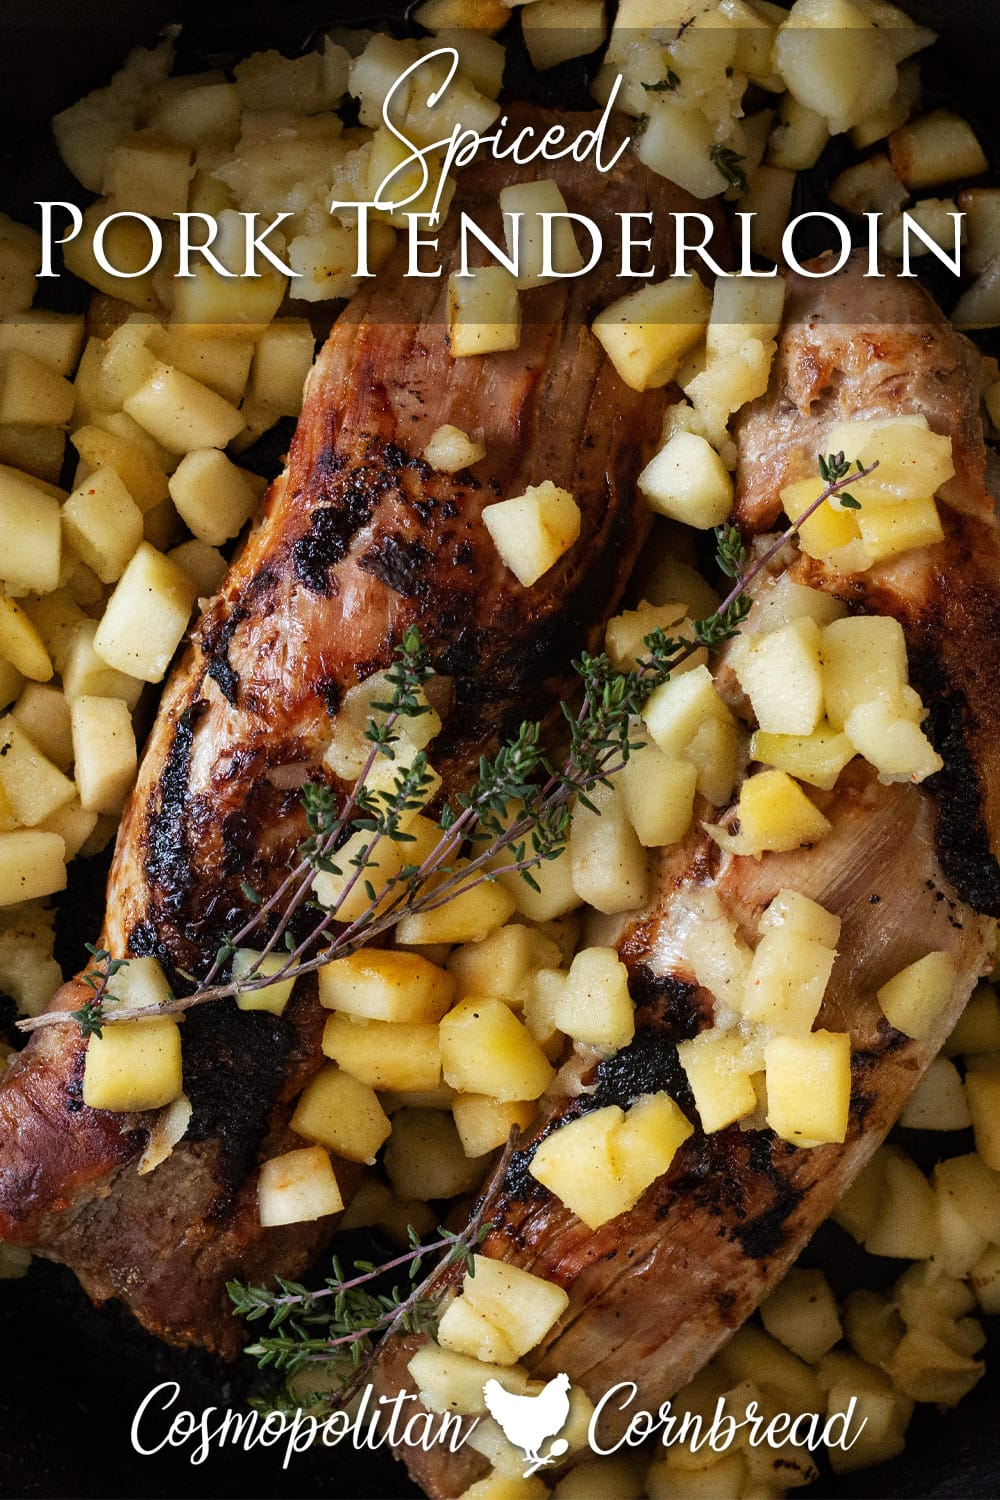 This Pork Tenderloin is brined, seasoned, pan-seared and baked to juicy perfection.